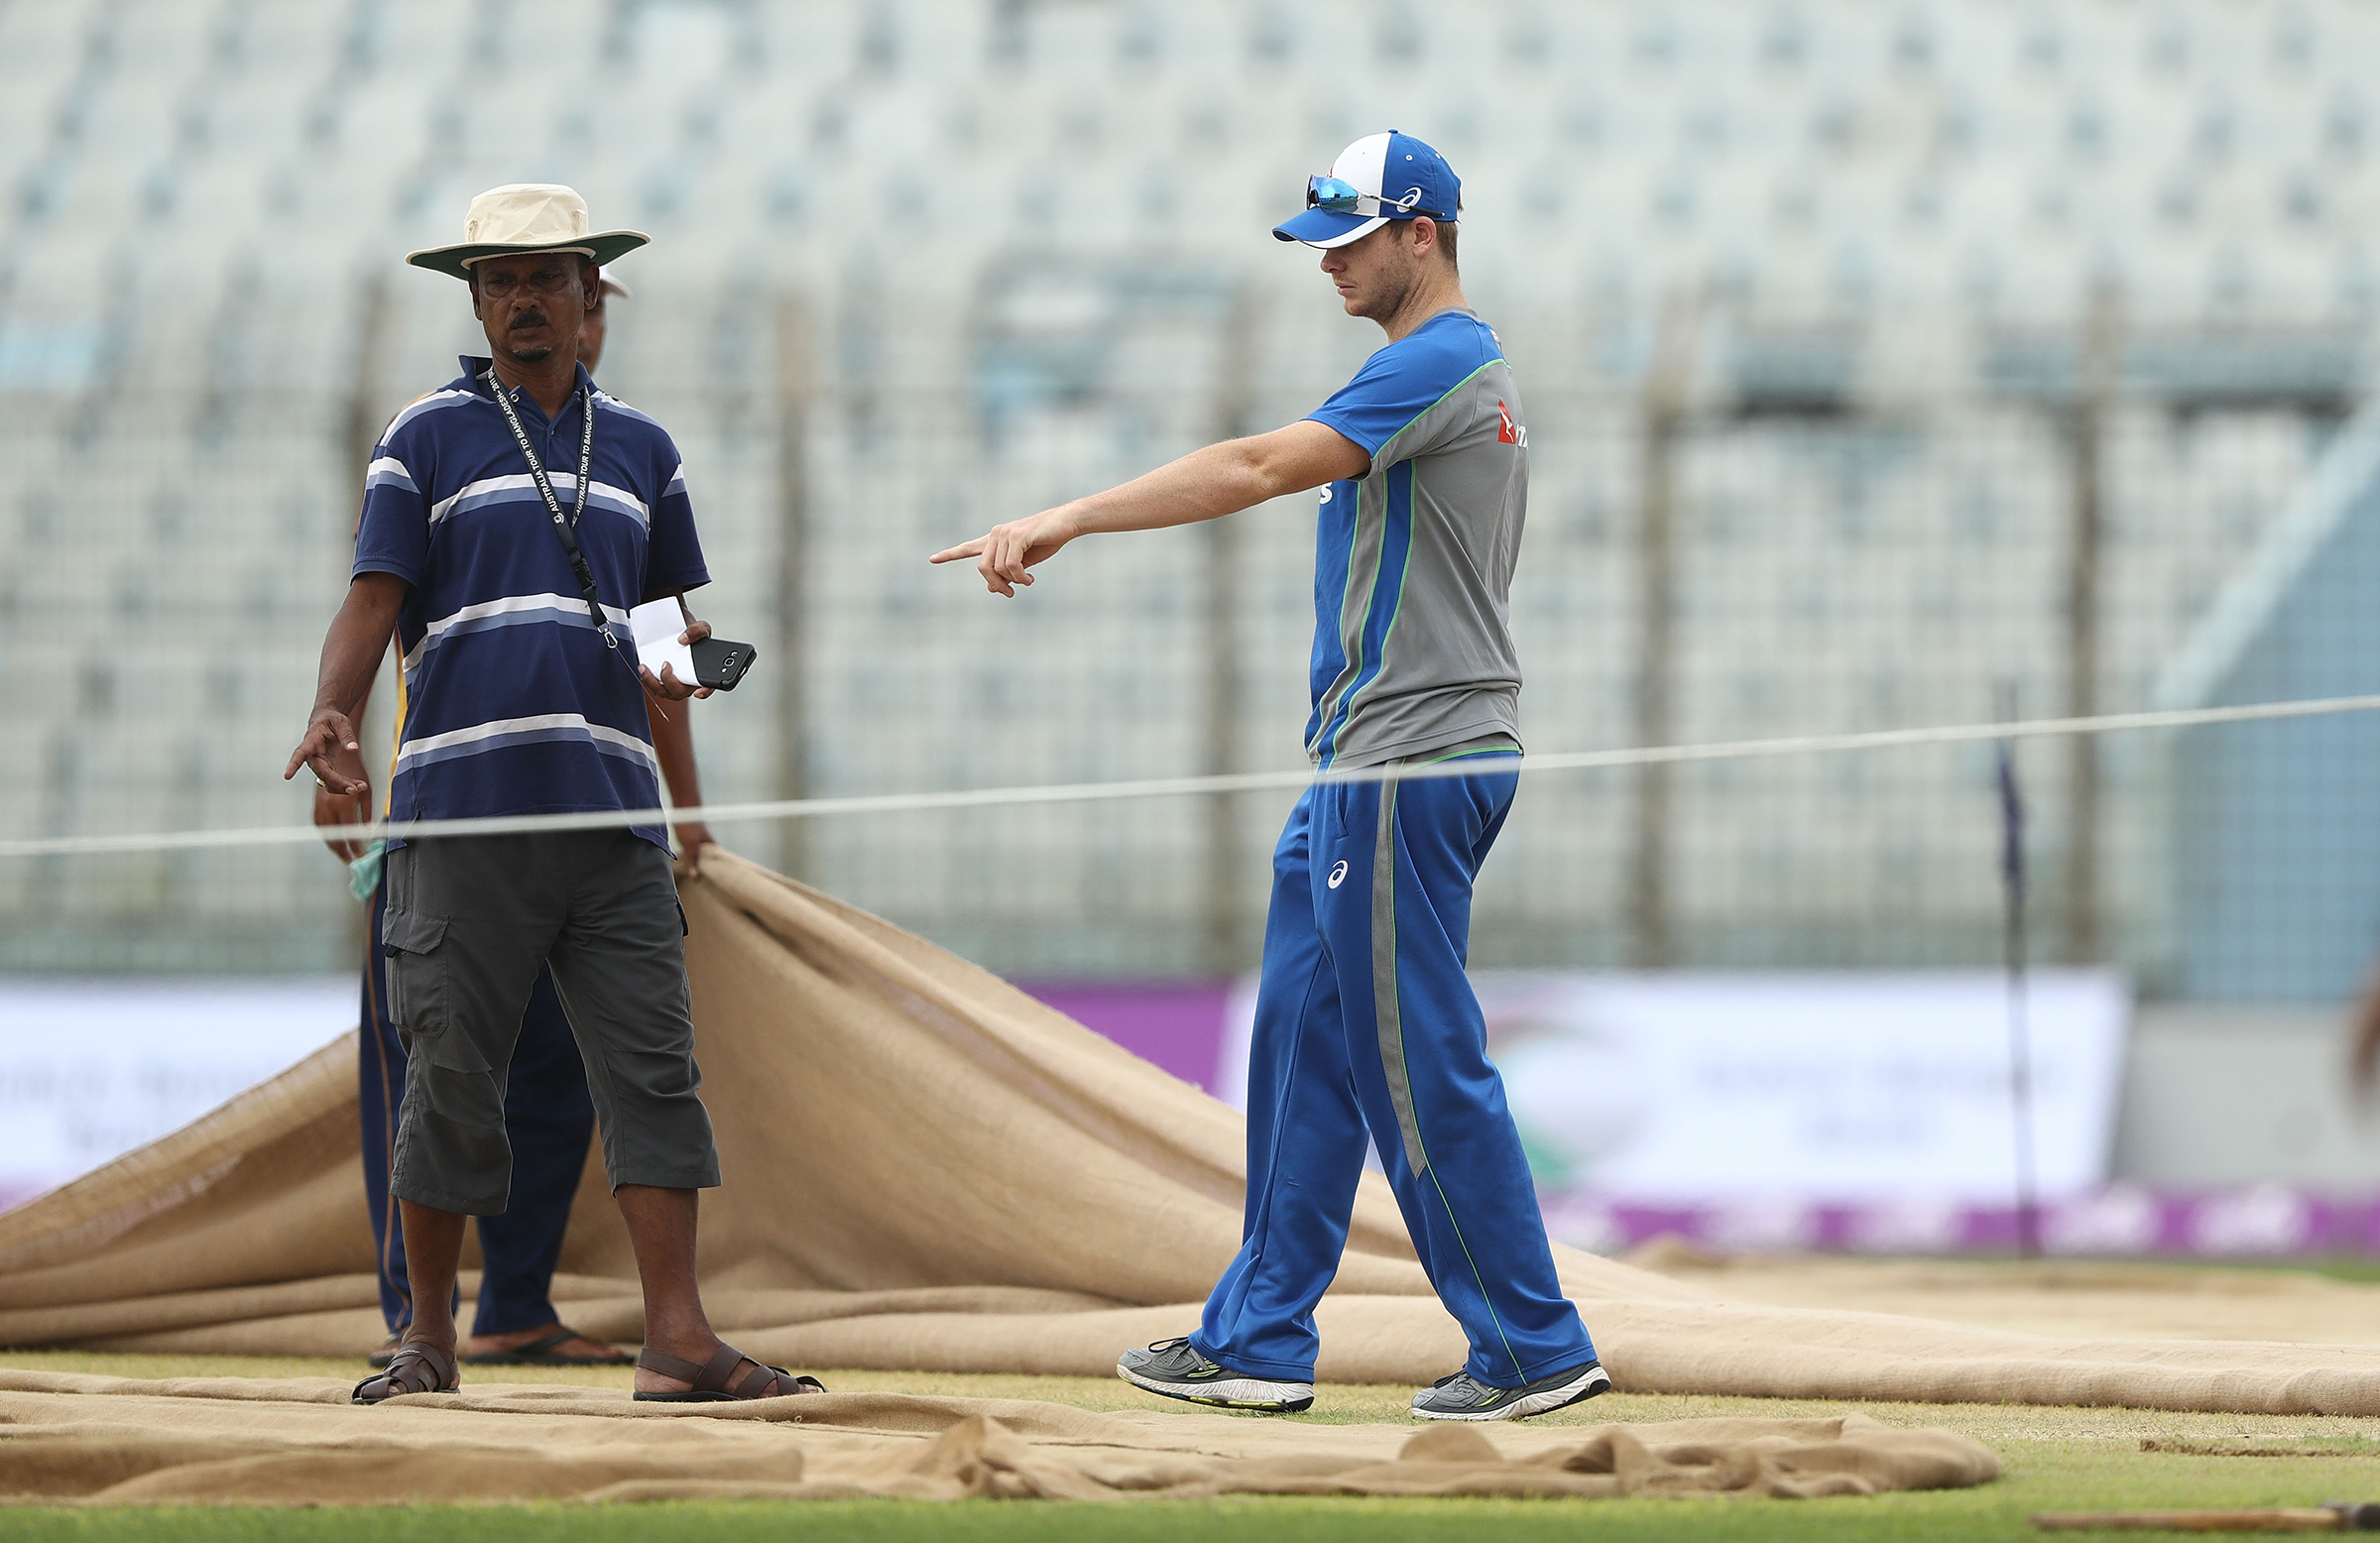 Steve Smith inspects the Chittagong pitches // Getty